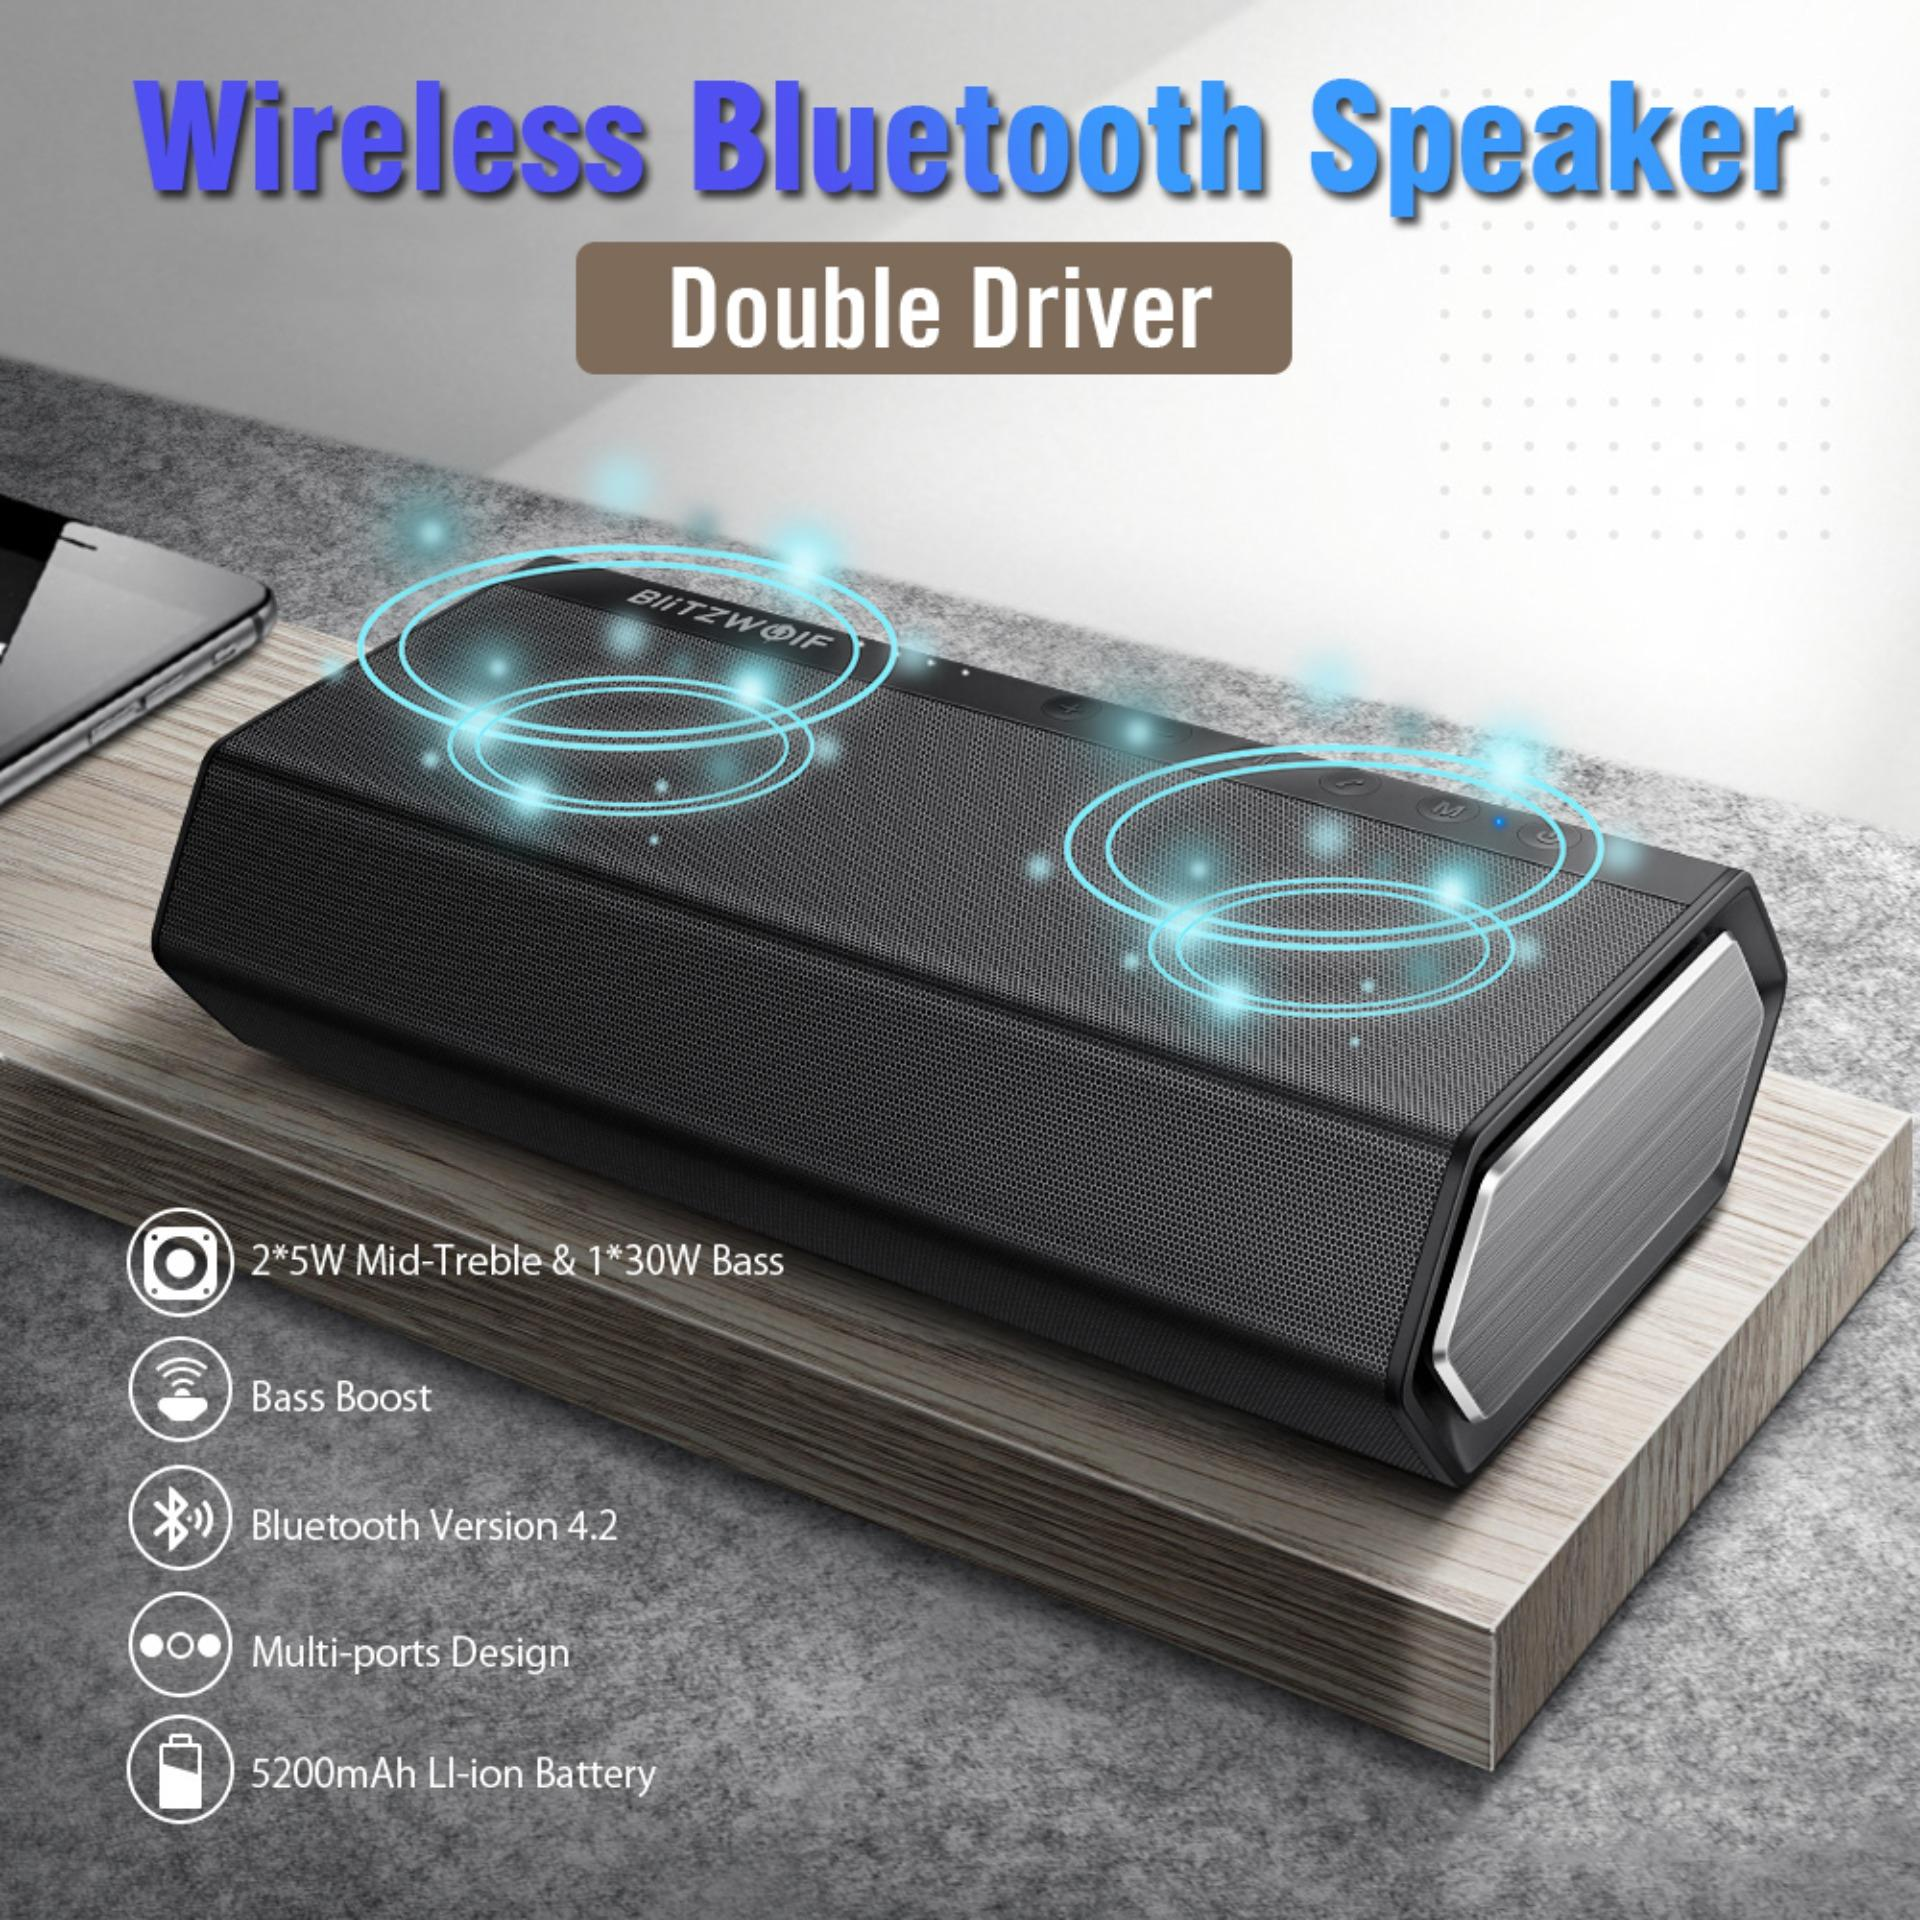 【Free Shipping + Super Deal + Limited Offer】BlitzWolf BW-AS2 40W 5200mAh  Double Driver Wireless bluetooth Speaker 30W Strengthened Upward Bass